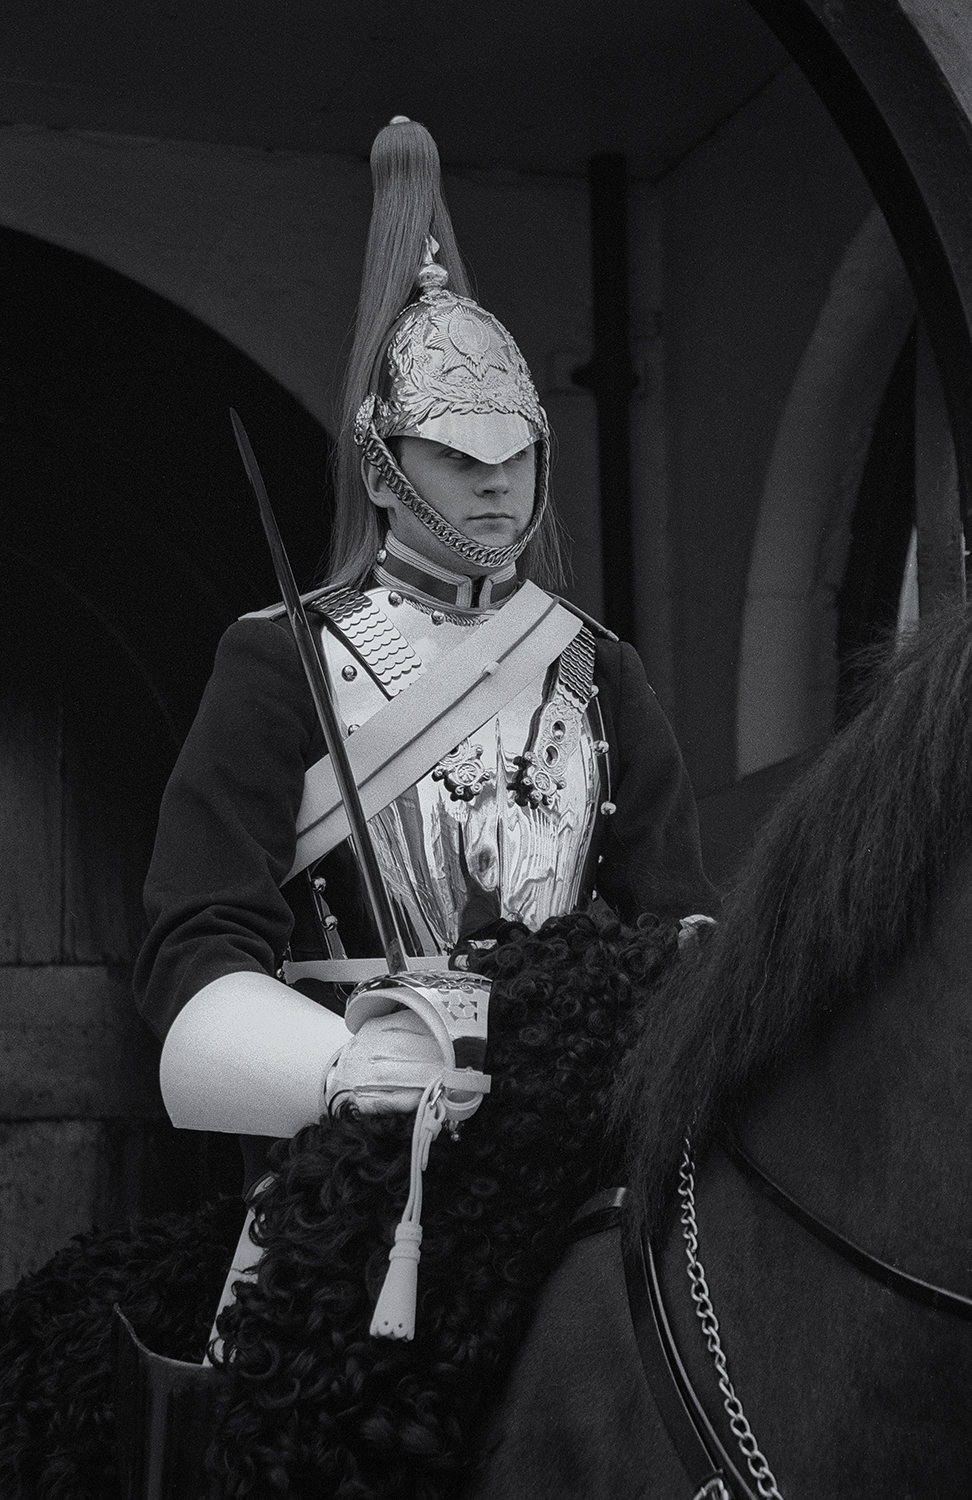 Horse_Guard_Don_Conrard.jpg